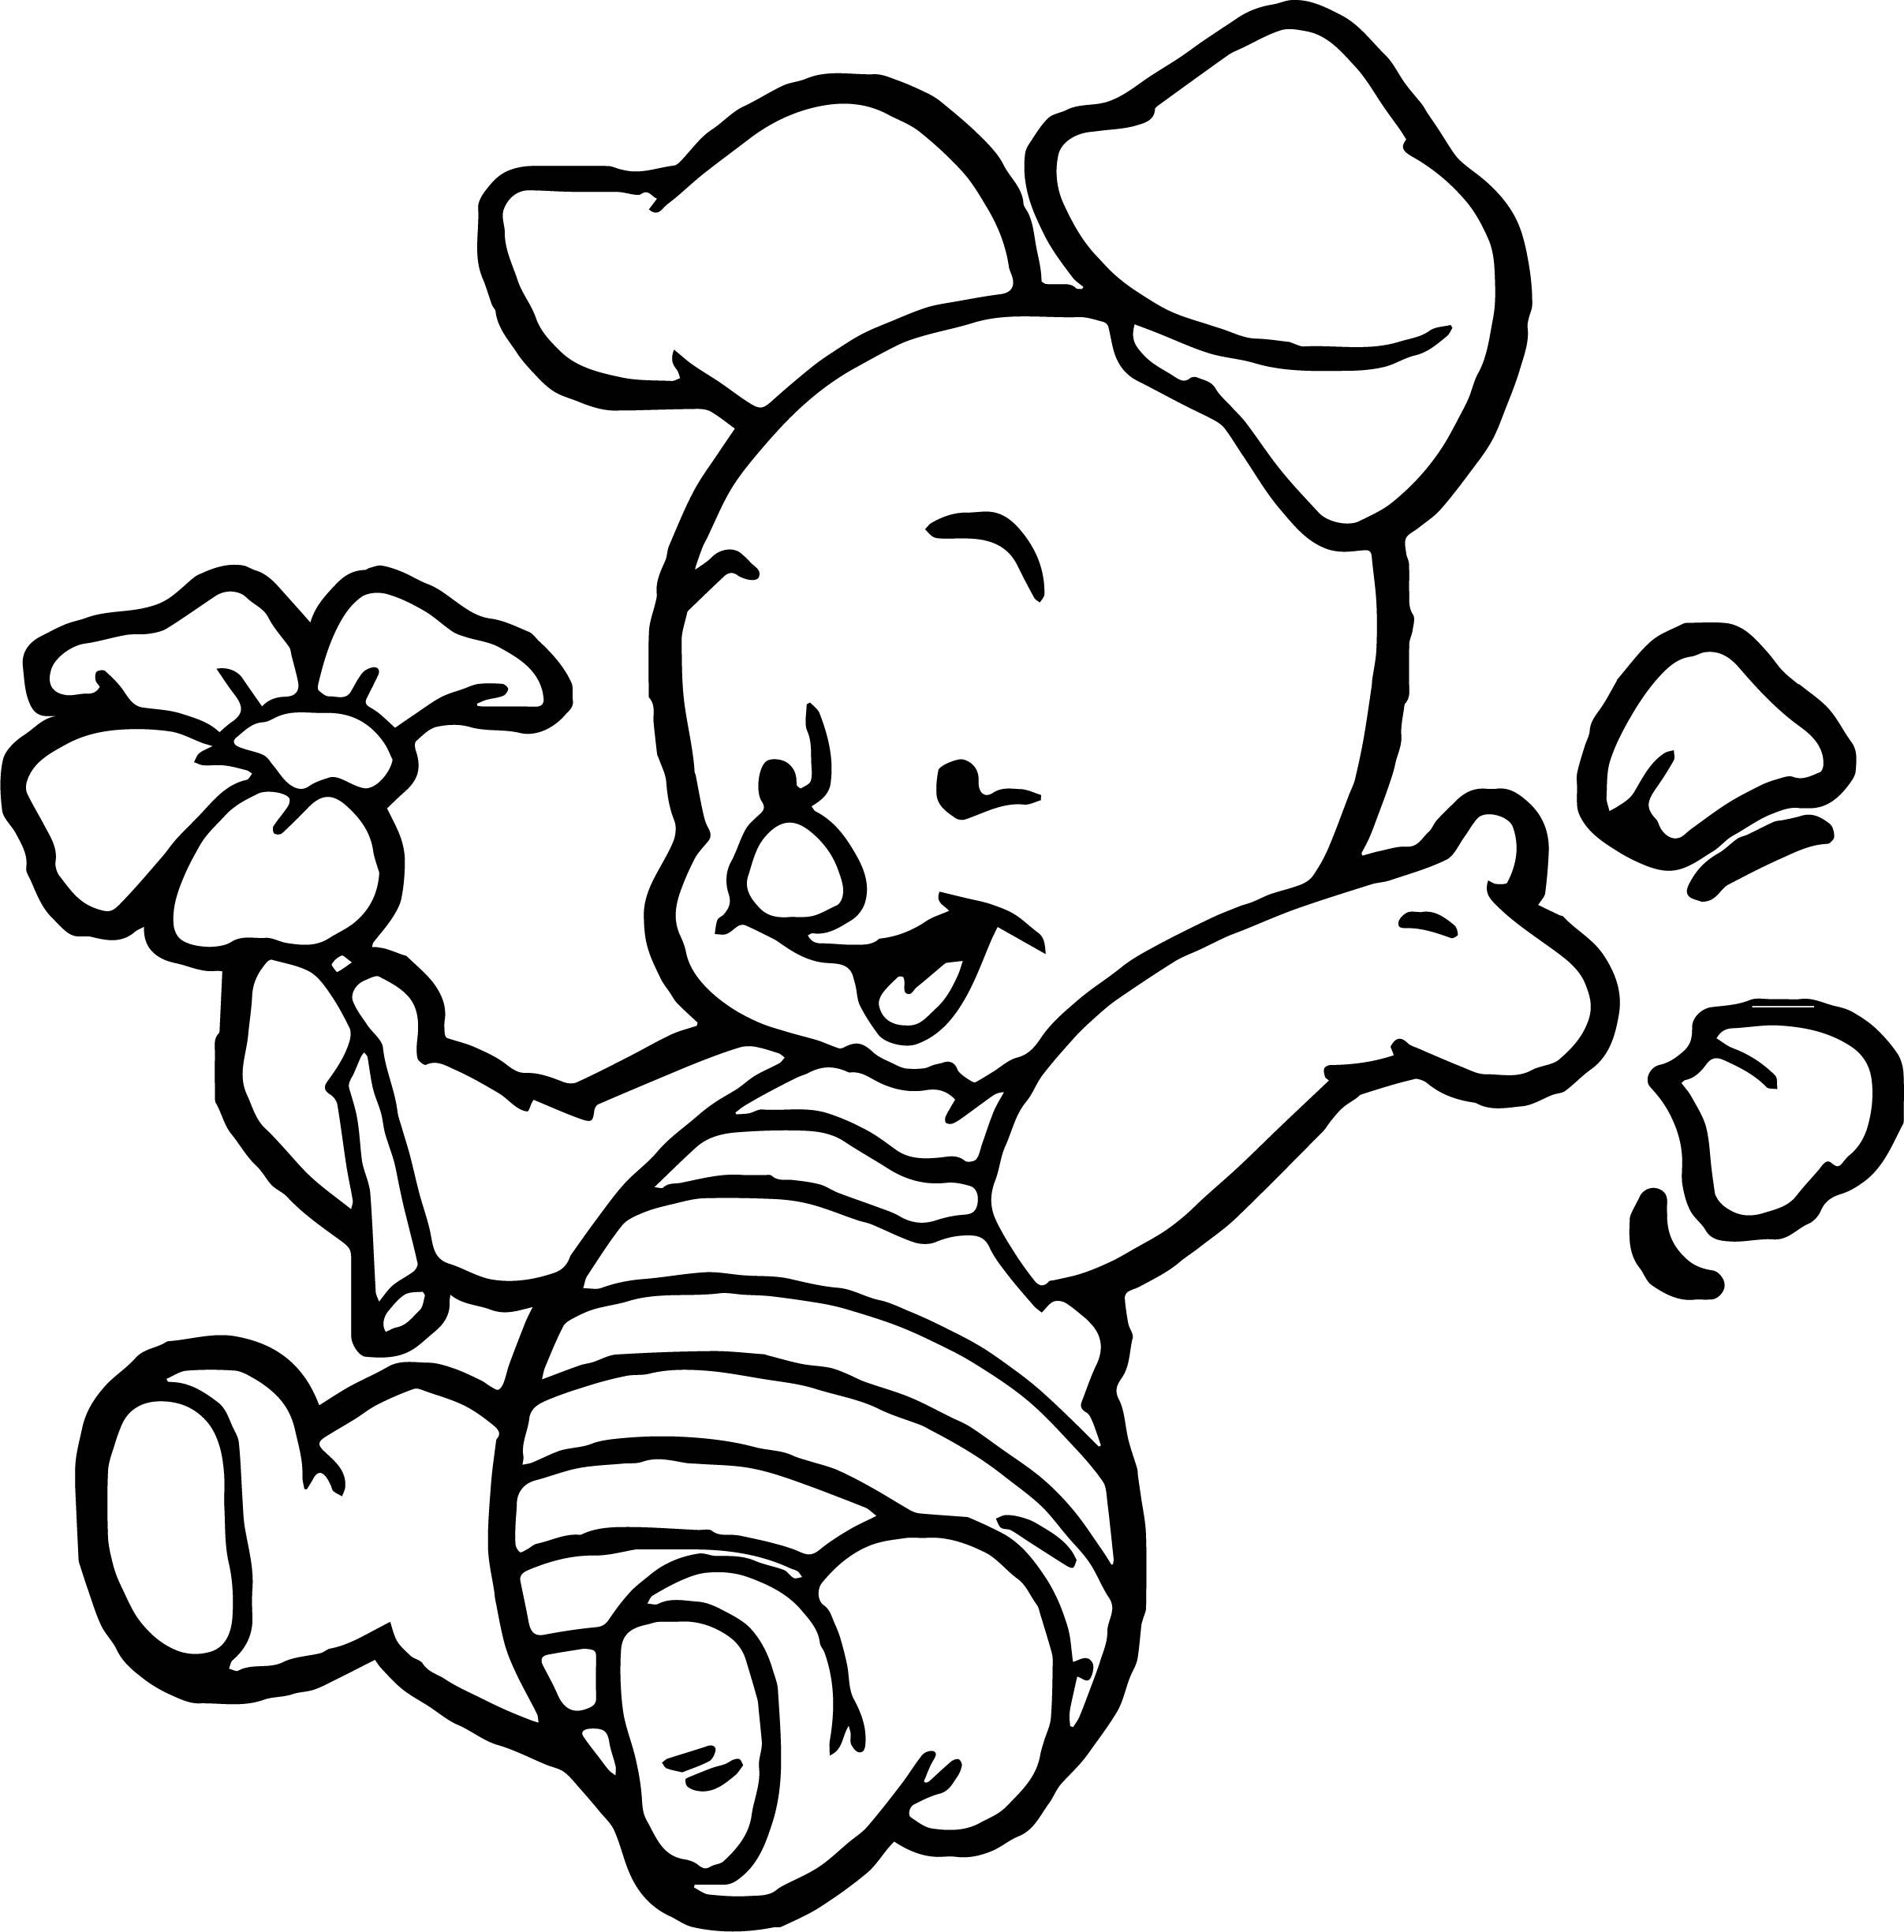 Cool Baby Piglet Winnie The Pooh Flower Coloring Page Winnie The Pooh Drawing Cartoon Coloring Pages Disney Coloring Pages